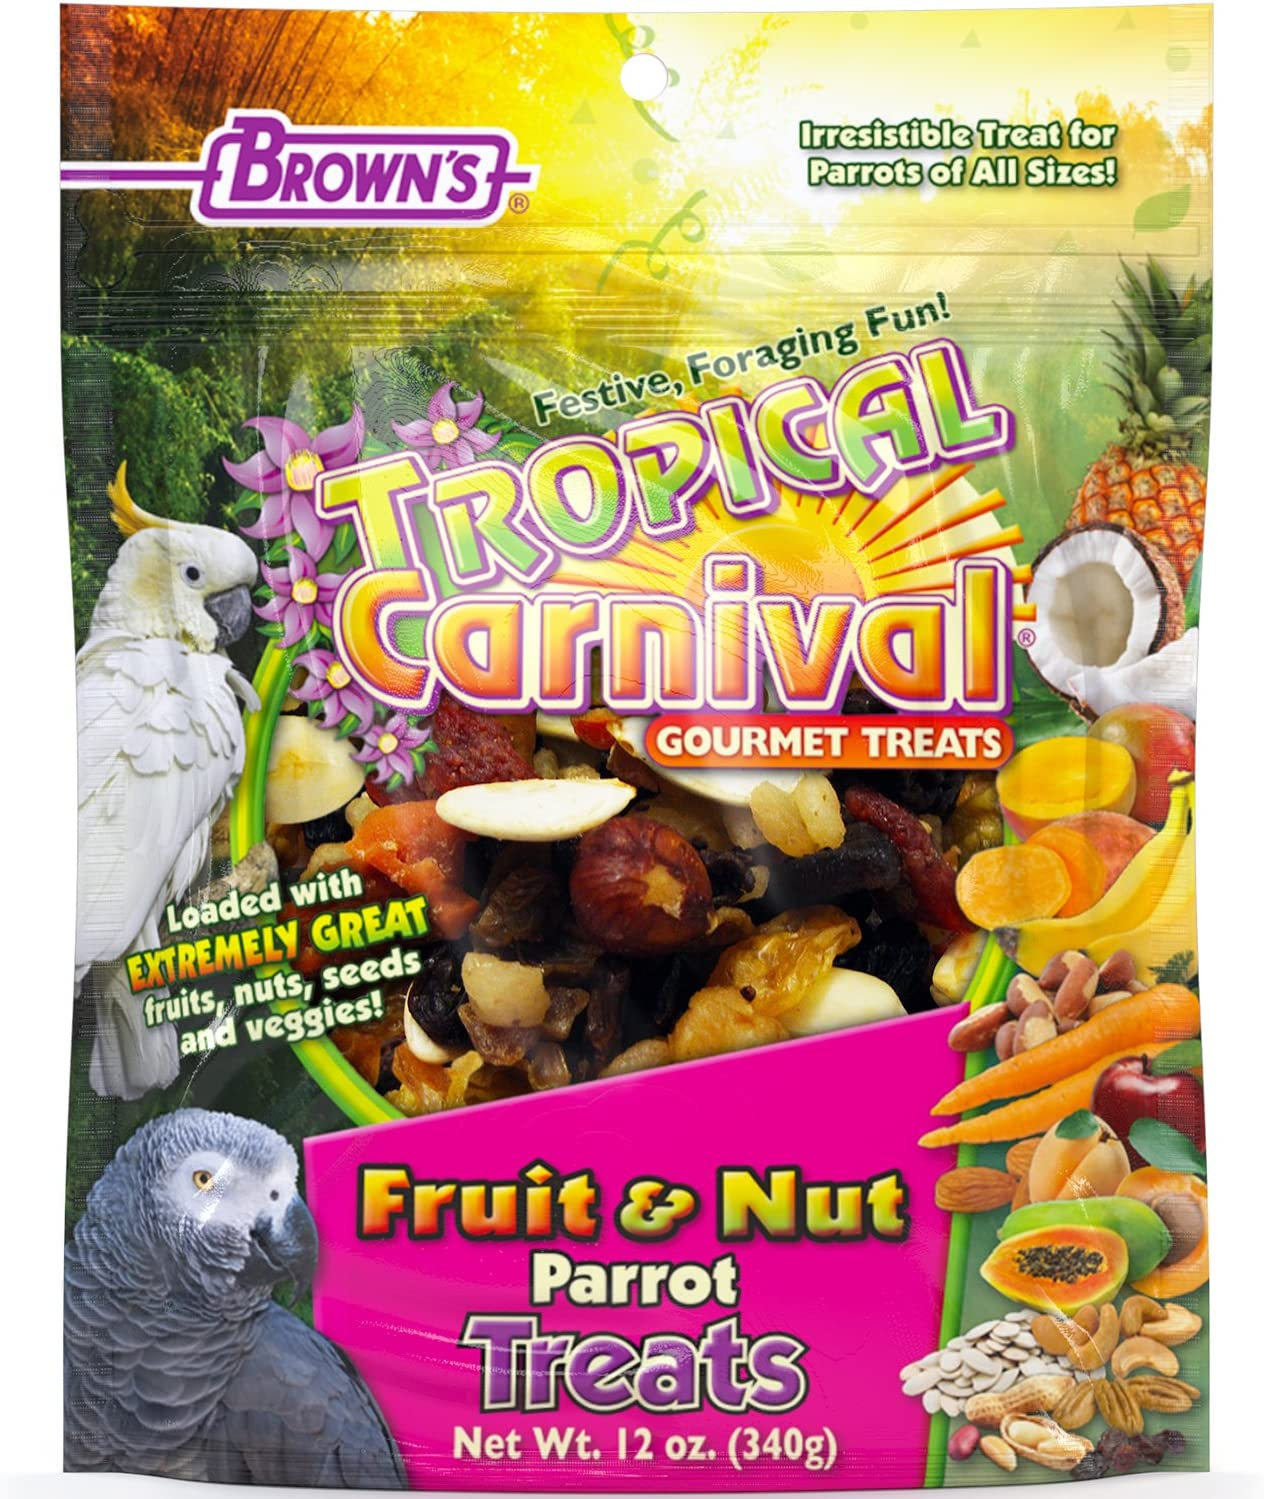 F.M. Brown's Tropical Carnival Fruit & Nut Parrot Treat with Natural Fruits, Nuts, Seeds and Veggies, 12-oz Bag - Excellent Reward for Training Parrots of All Sizes